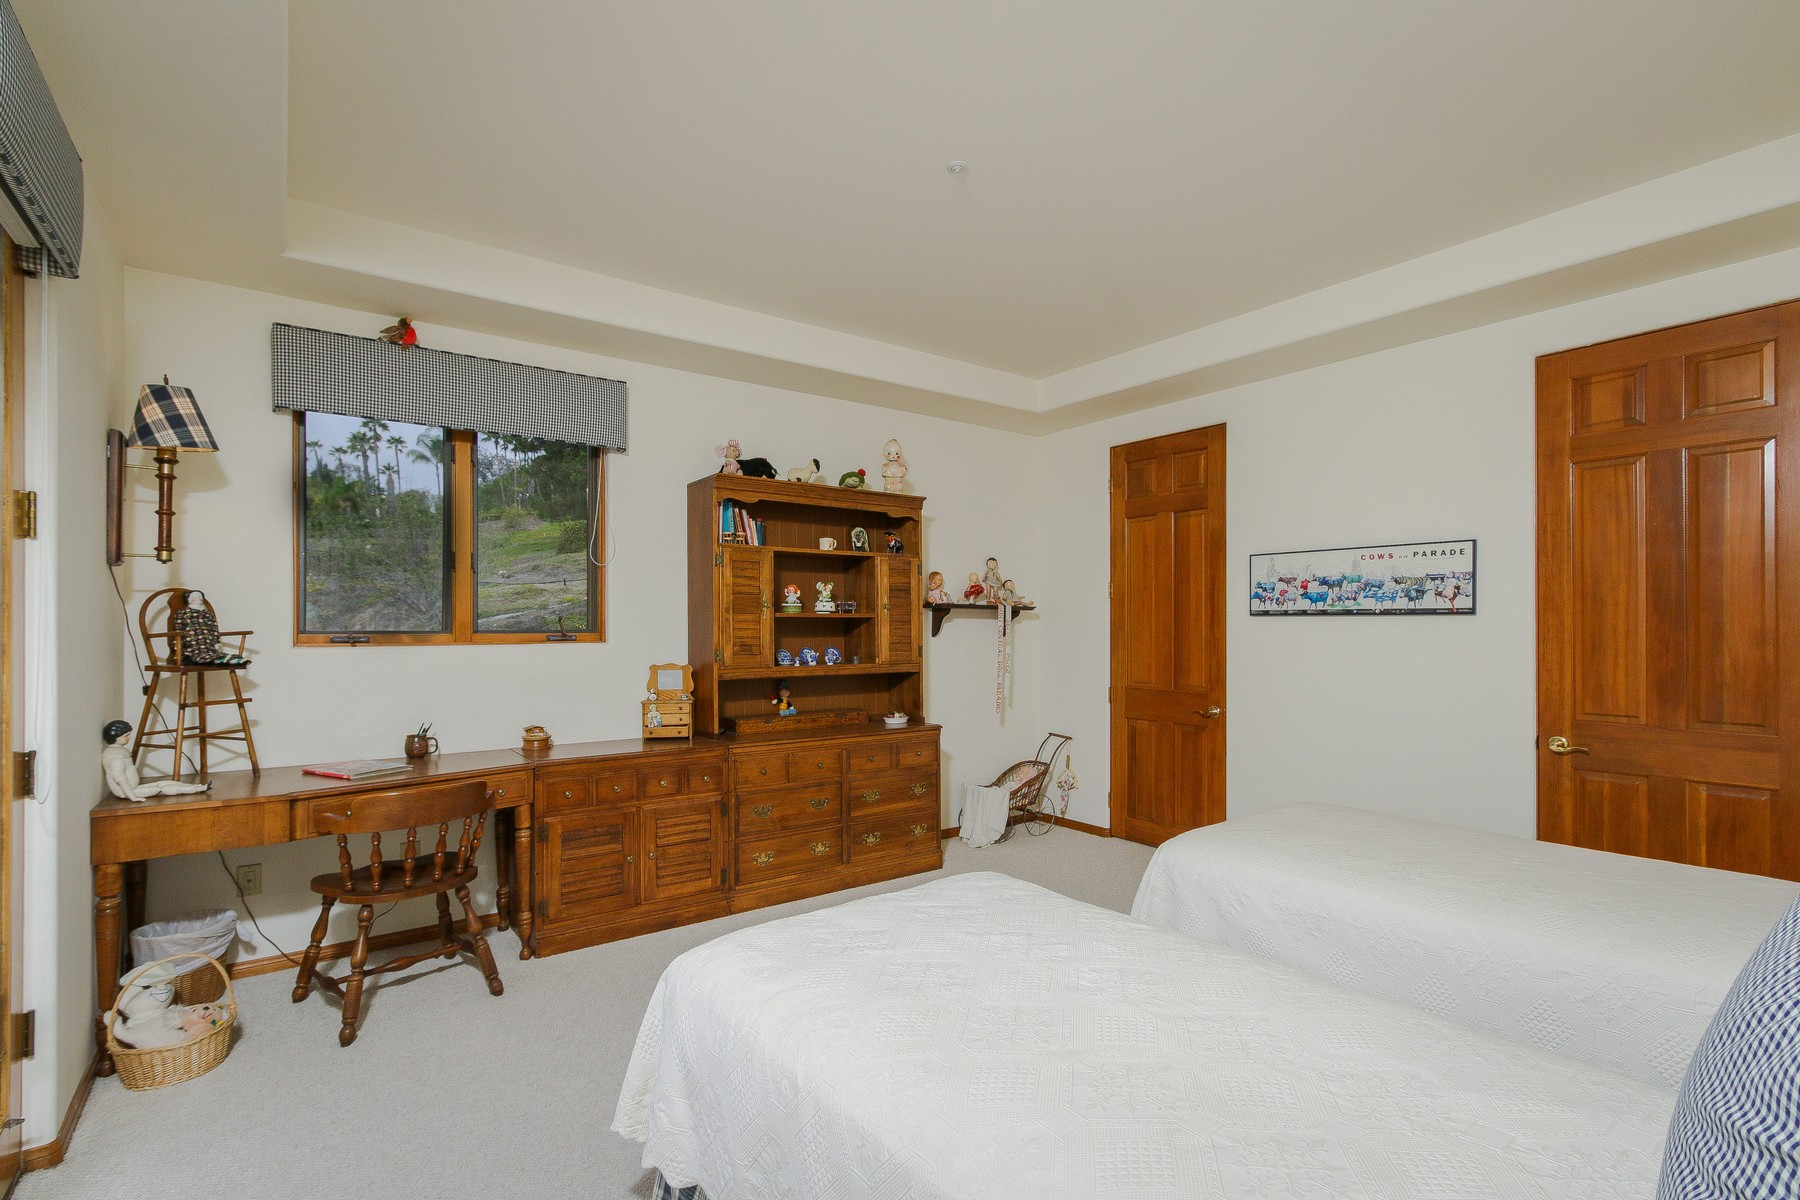 Additional photo for property listing at 1119 Rancho Encinitas  Encinitas, California 92024 Estados Unidos